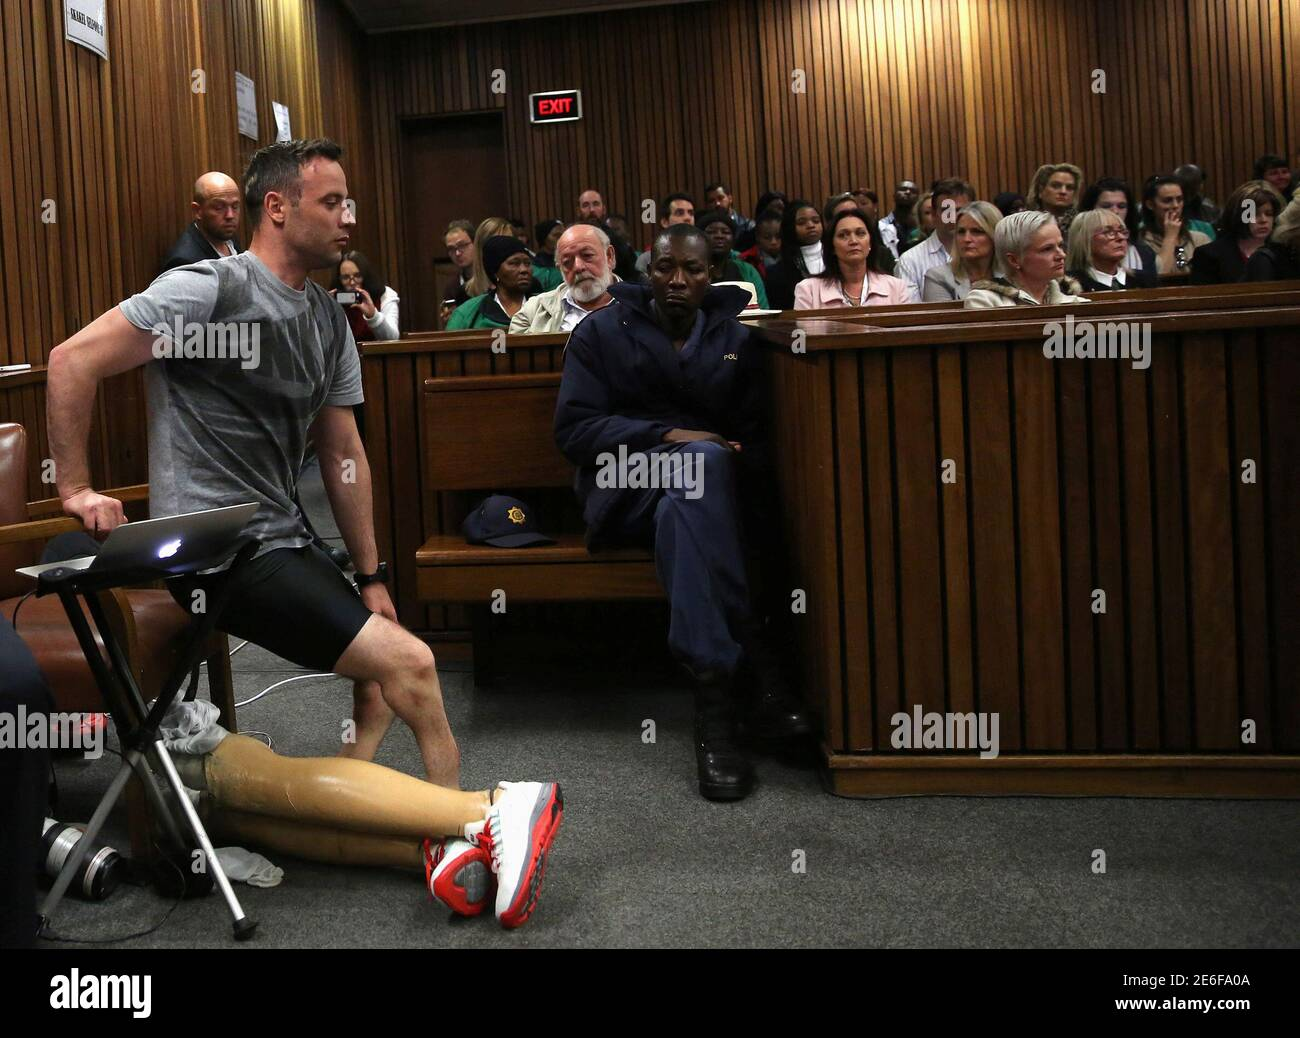 Paralympic gold medalist Oscar Pistorius prepares to walk across the courtroom without his prosthetic legs during the third day of the resentencing hearing for the 2013 murder of his girlfriend Reeva Steenkamp, at Pretoria High Court, South Africa June 15, 2016. REUTERS/Siphiwe Sibeko Foto de stock